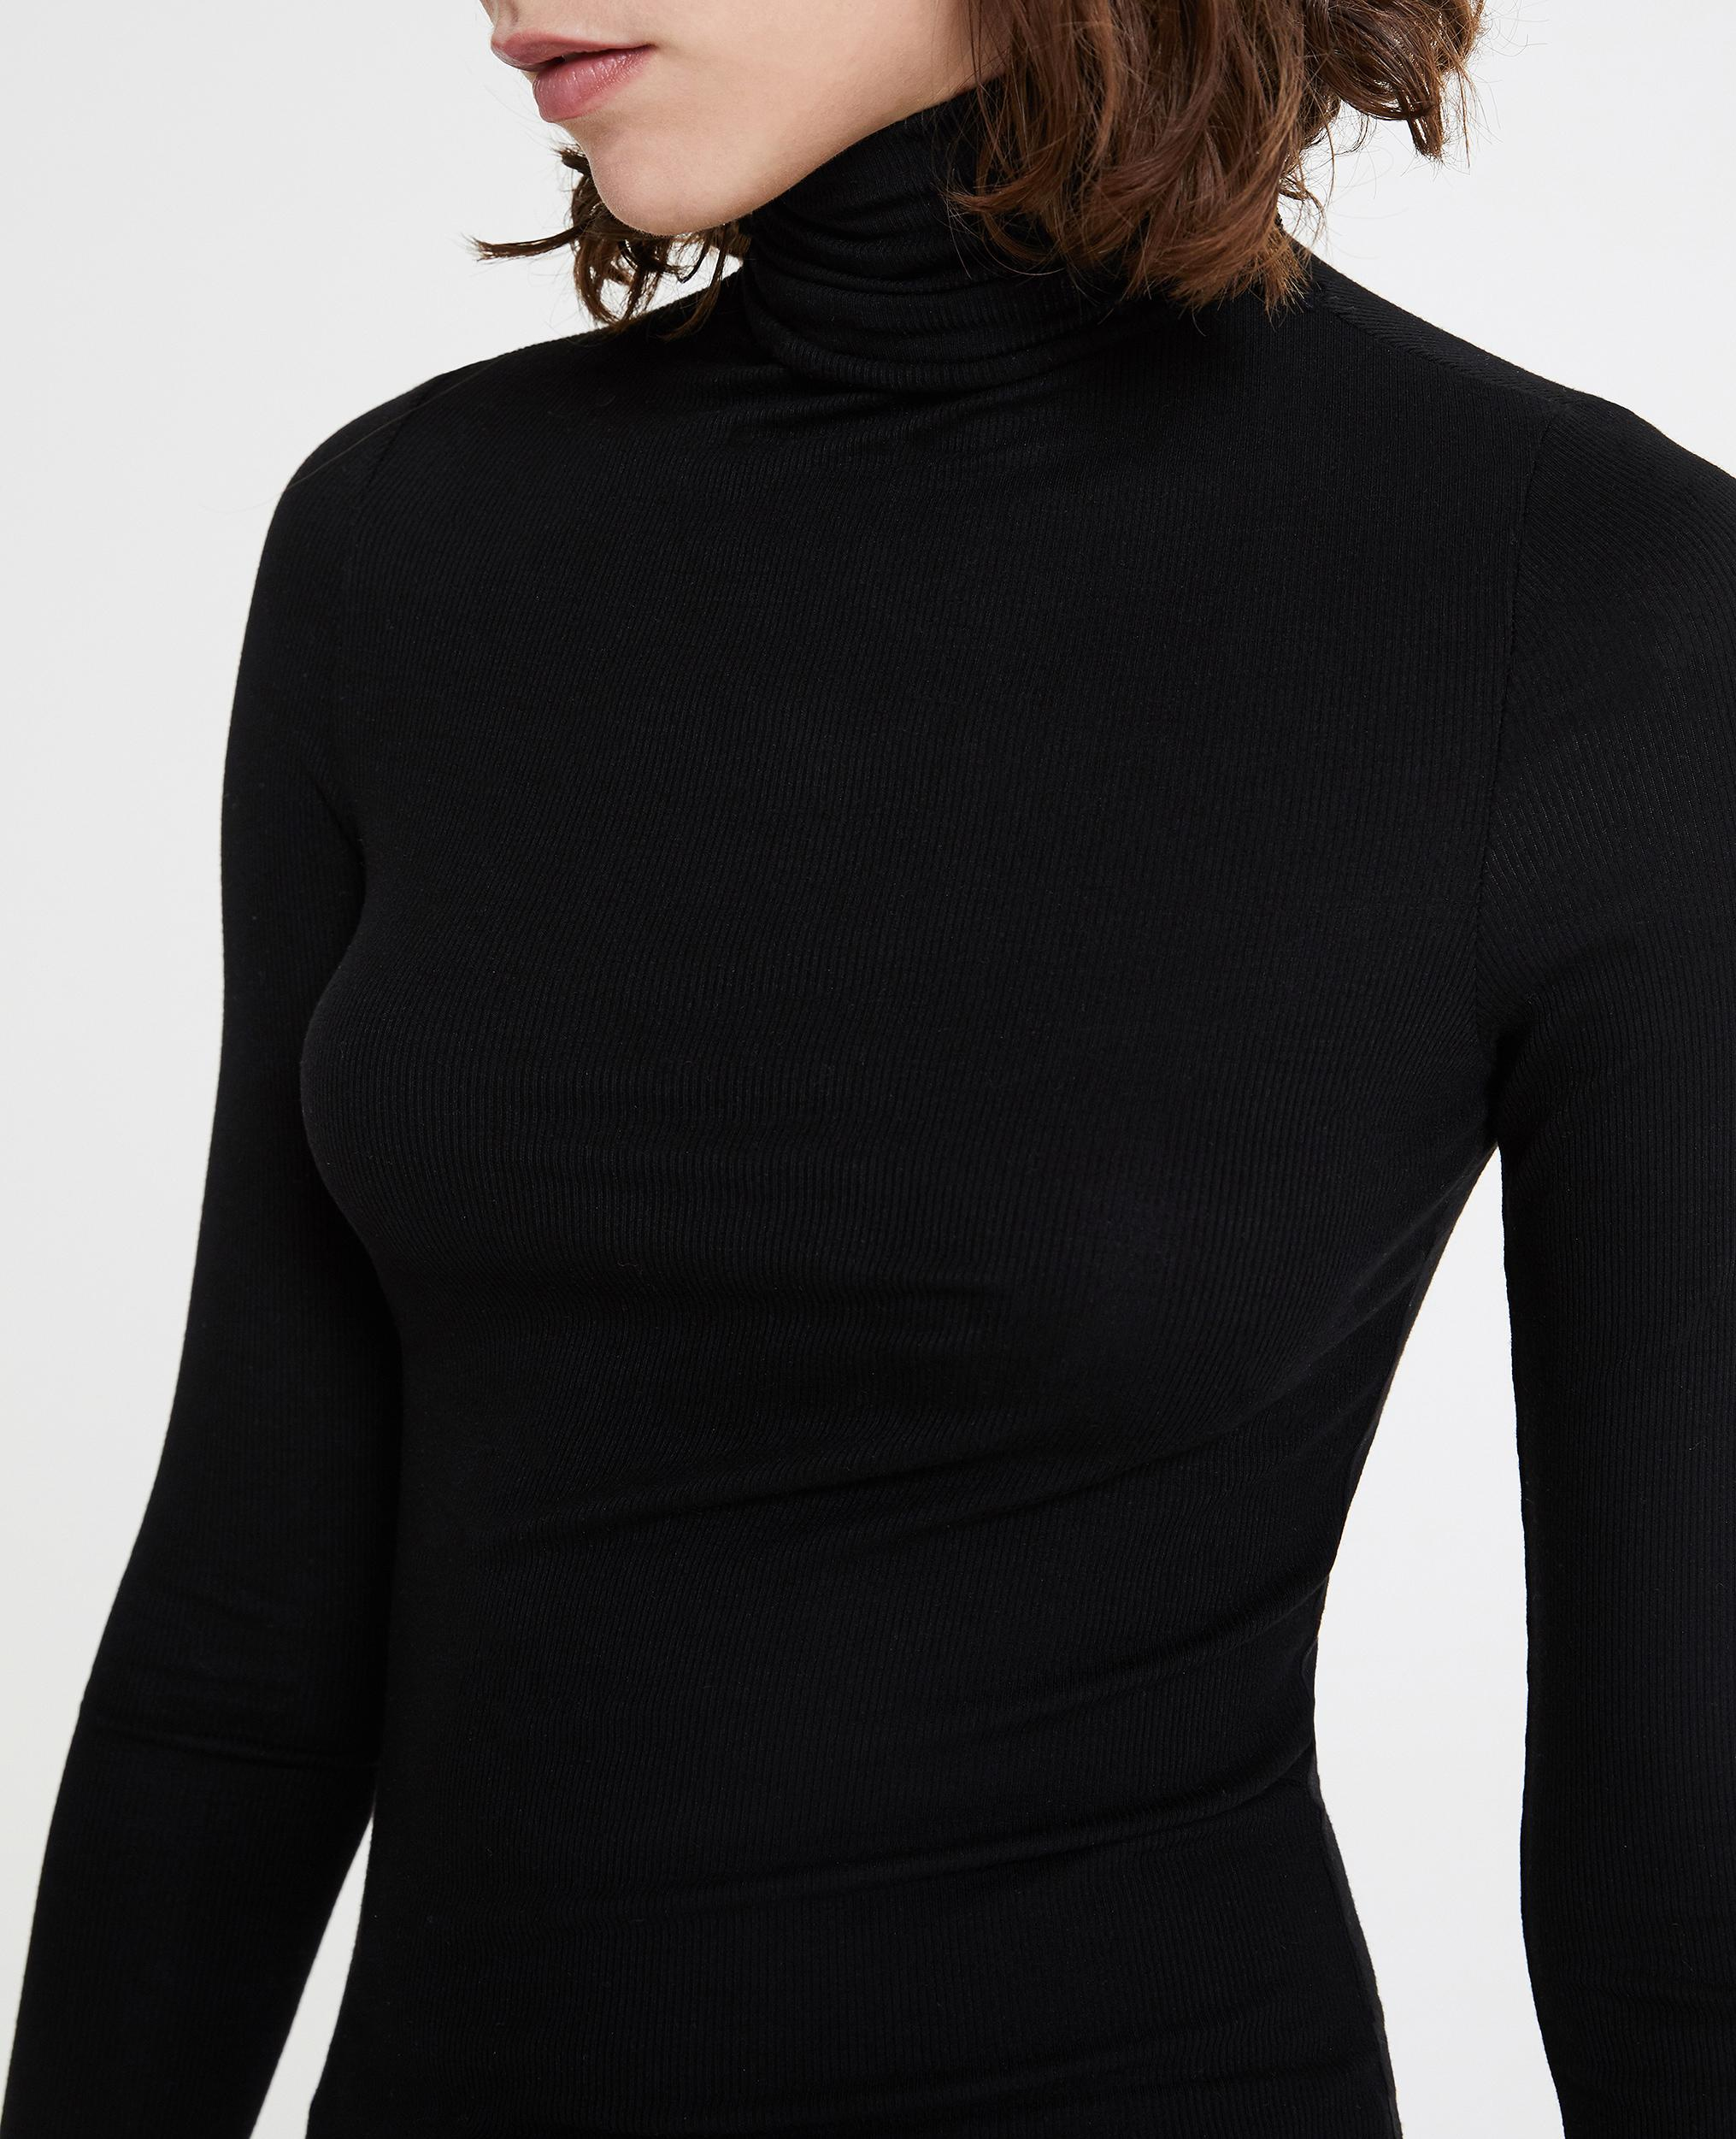 Chels Turtleneck - True Black